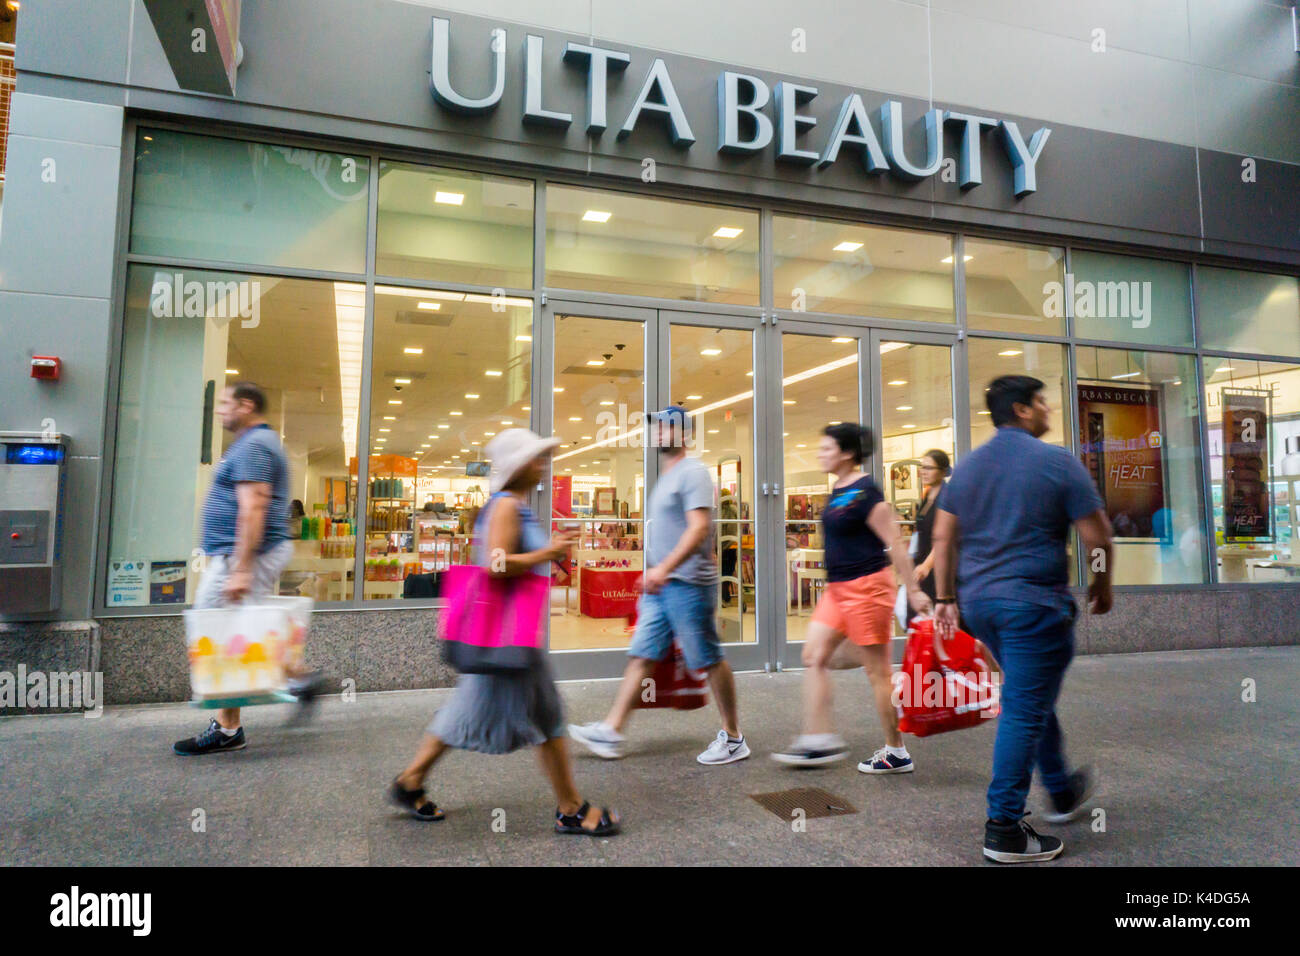 A branch of the make up and beauty chain, Ulta Beauty, located in a mall in Queens in New York on Saturday, August 26, 2017. Ulta Beauty recently reported second-quarter earnings that beat Wall Street expectations worries about slowing sales caused their stock to drop. (© Richard B. Levine) - Stock Image